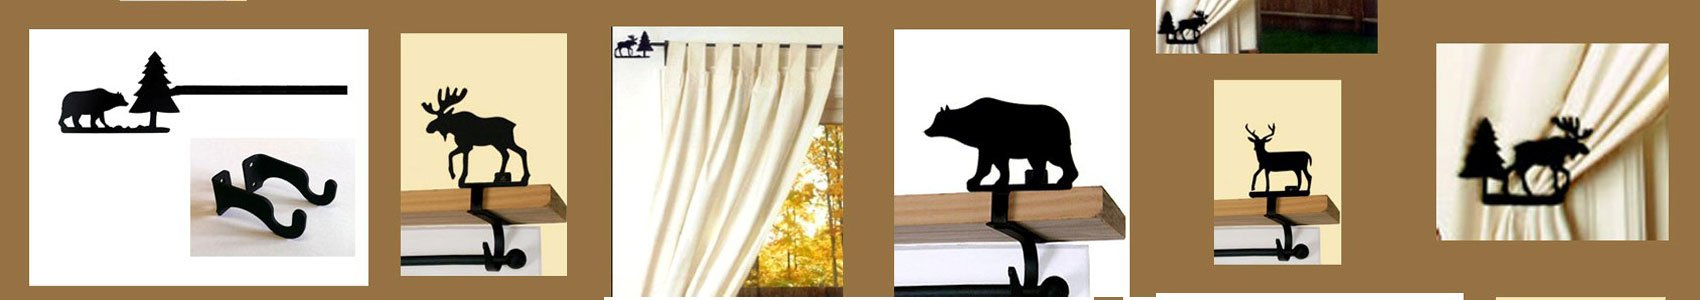 cabin-curtain-rods